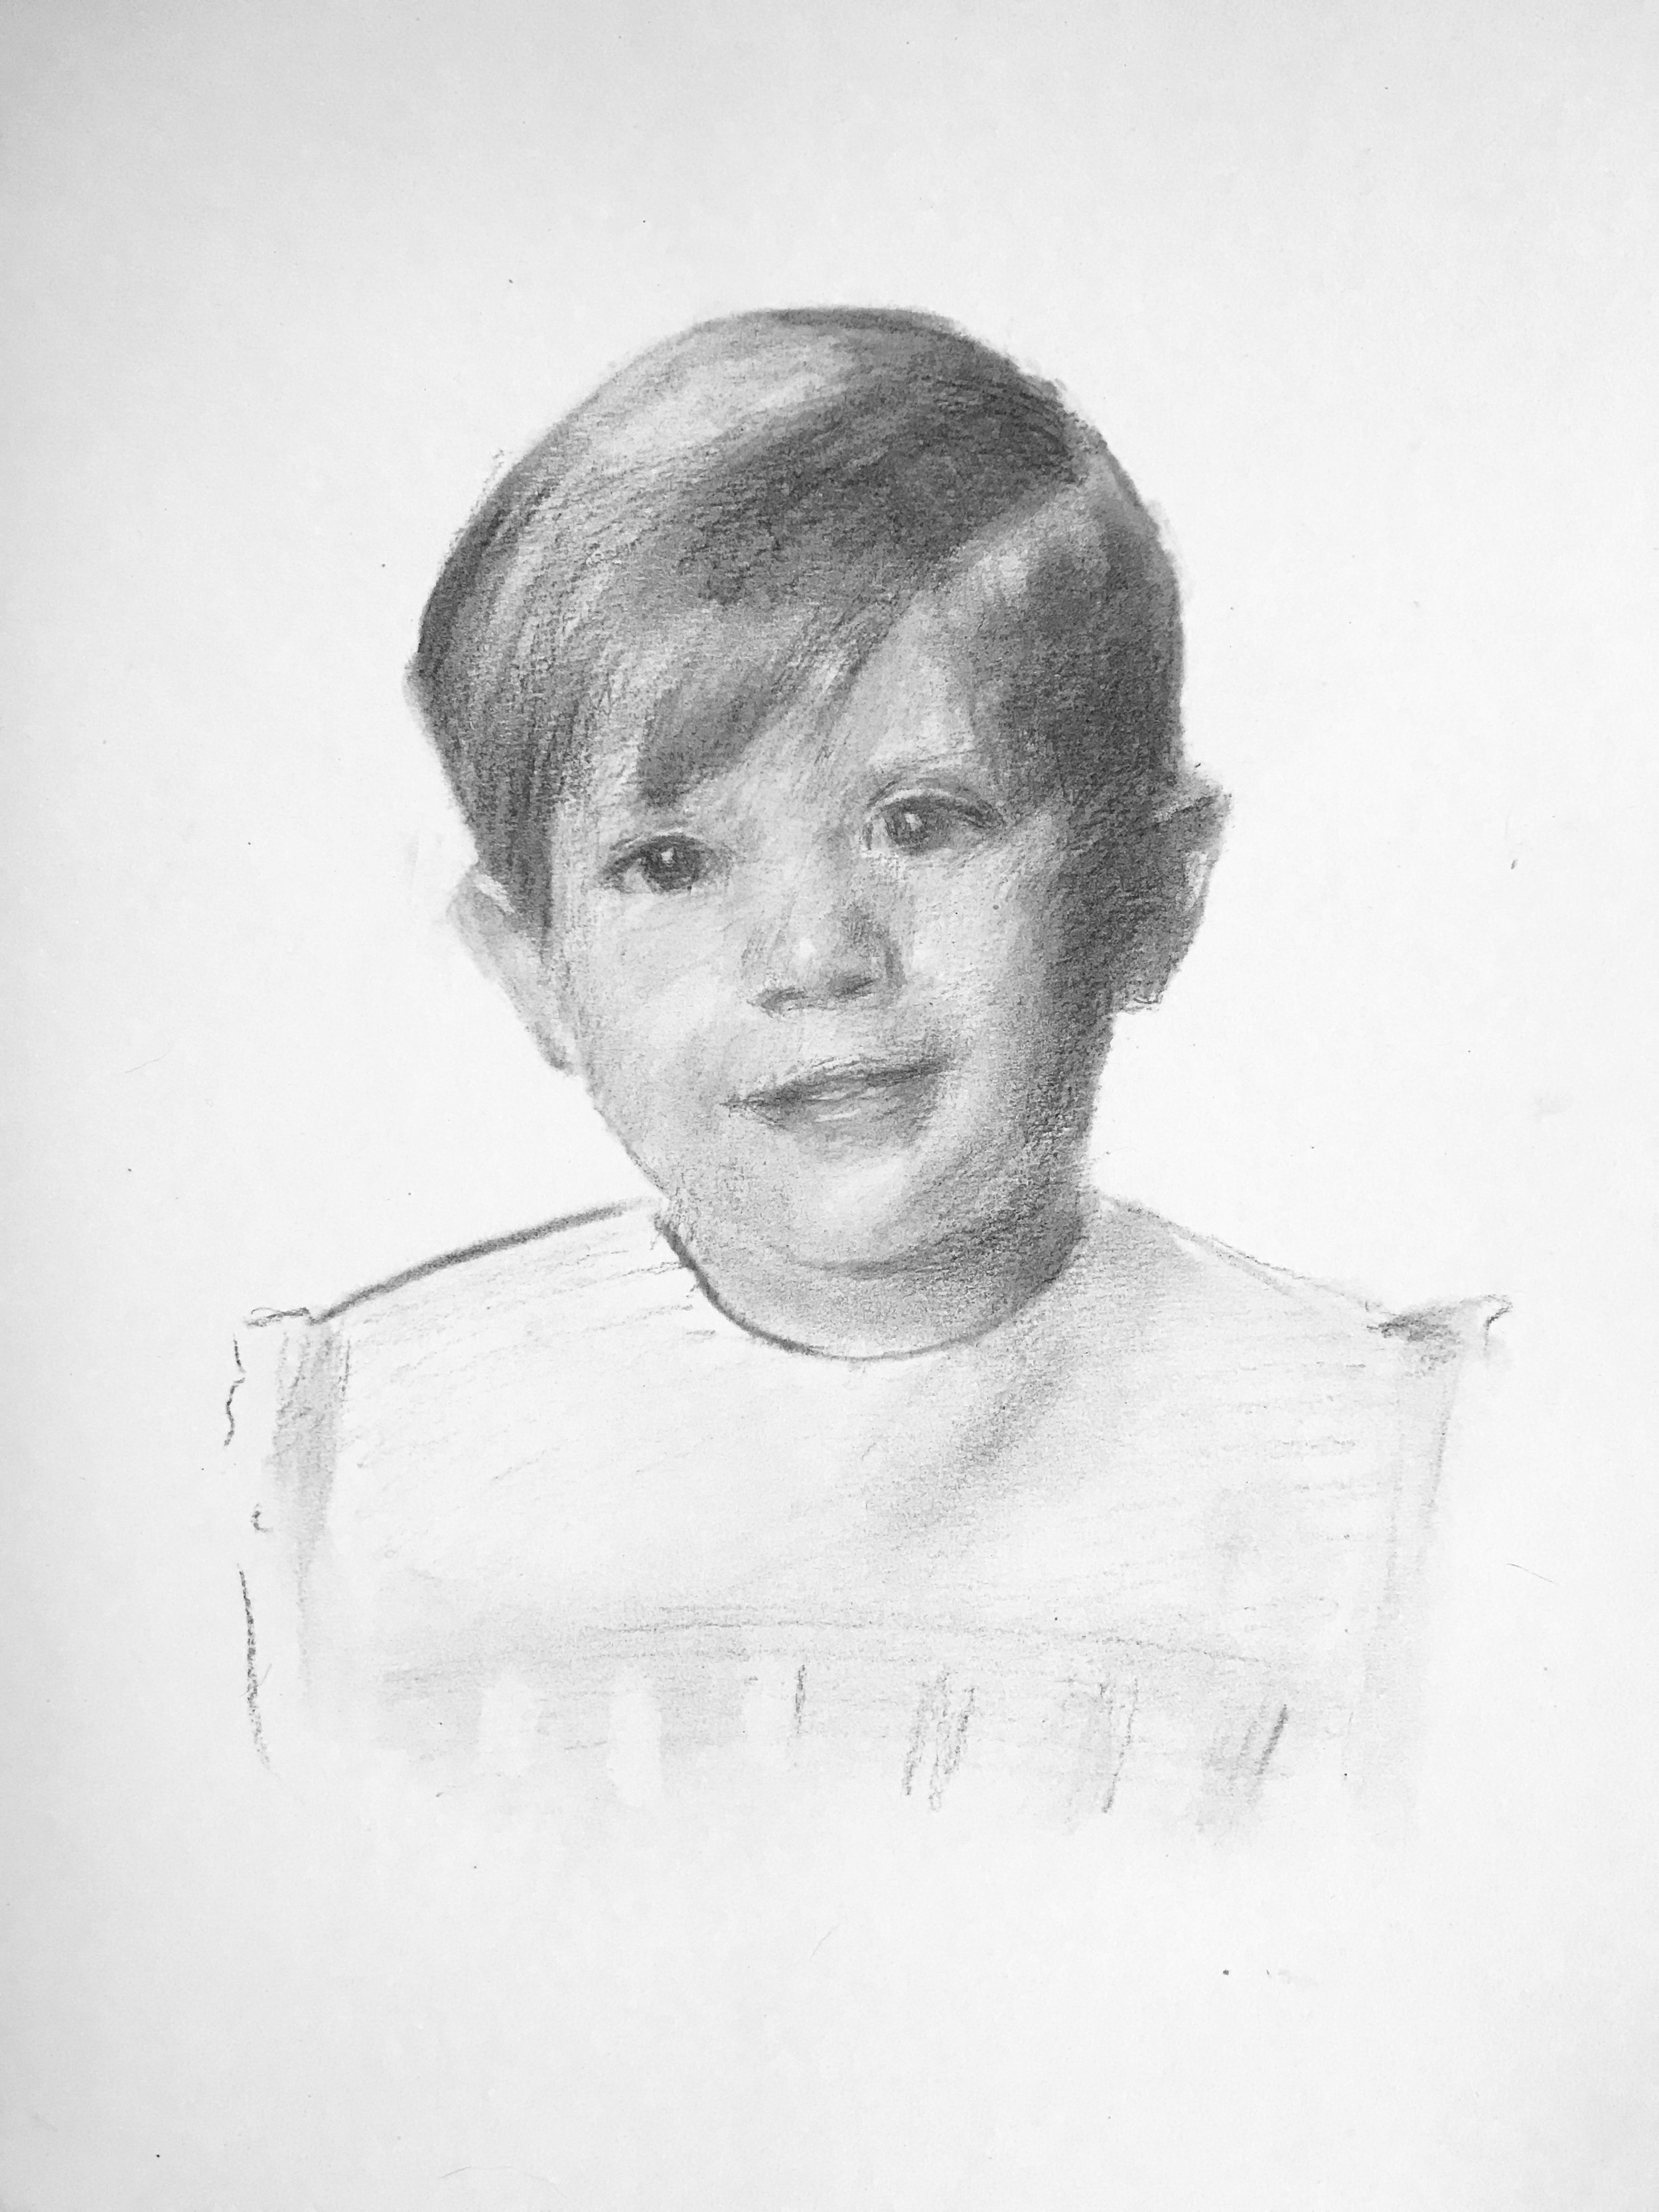 William, Age 3, Charcoal on Paper, Madison, Mississippi